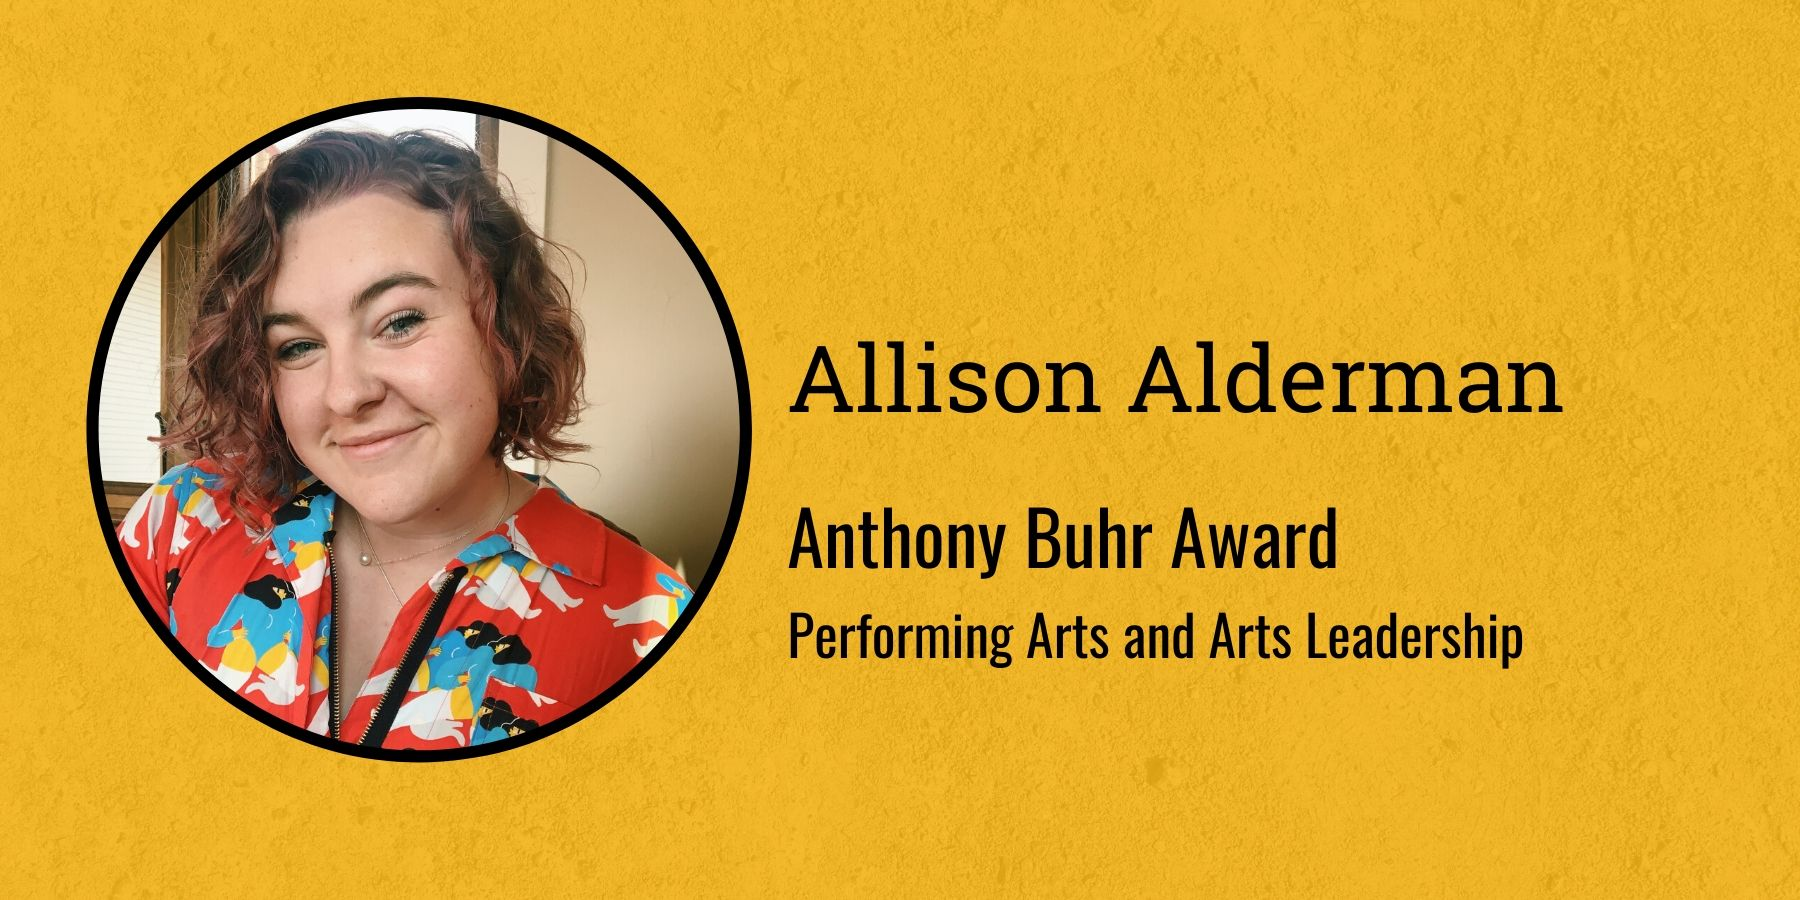 Photo of Allison Alderman and text Anthony Buhr Award, Performing Arts and Arts Leadership